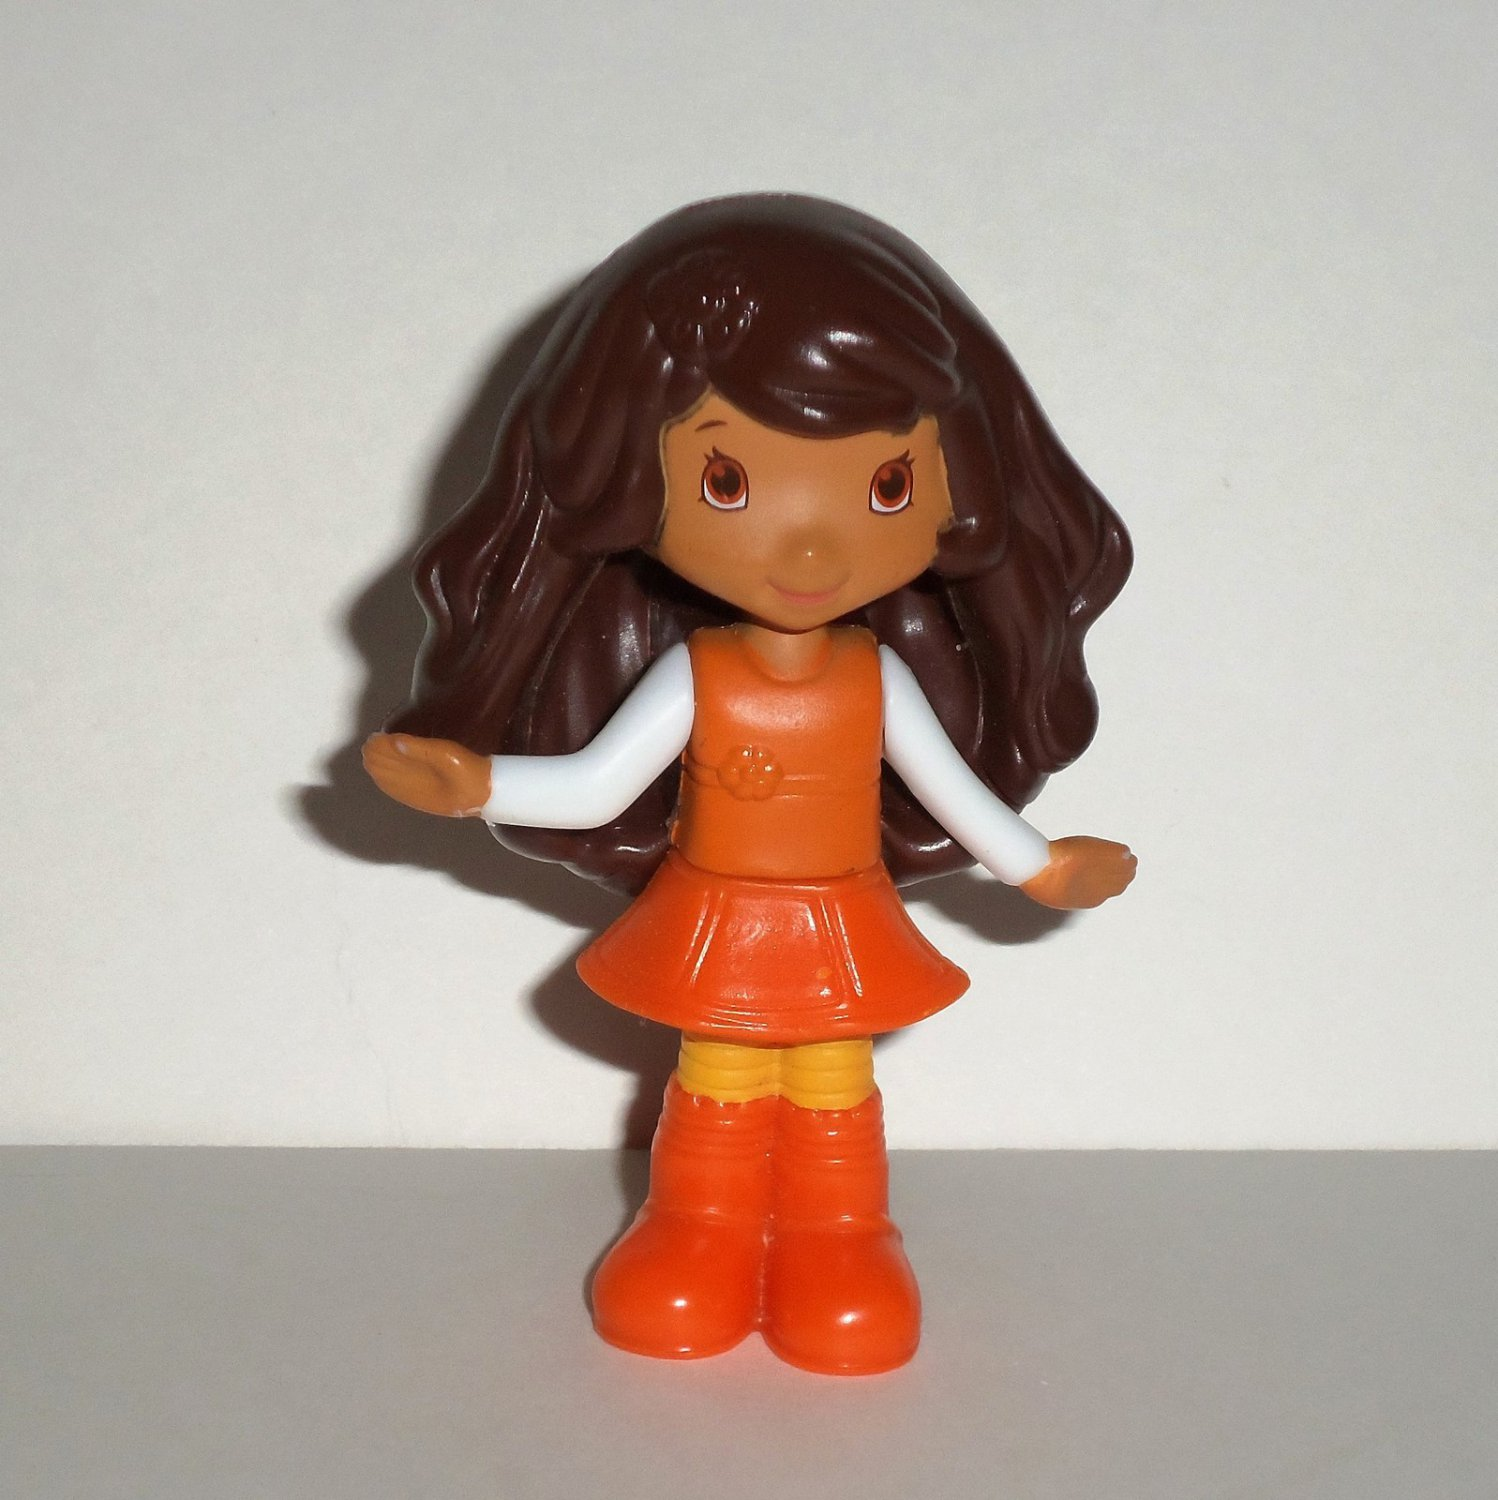 McDonald's 2010 Strawberry Shortcake Orange Blossom Doll Happy Meal Toy Loose Used